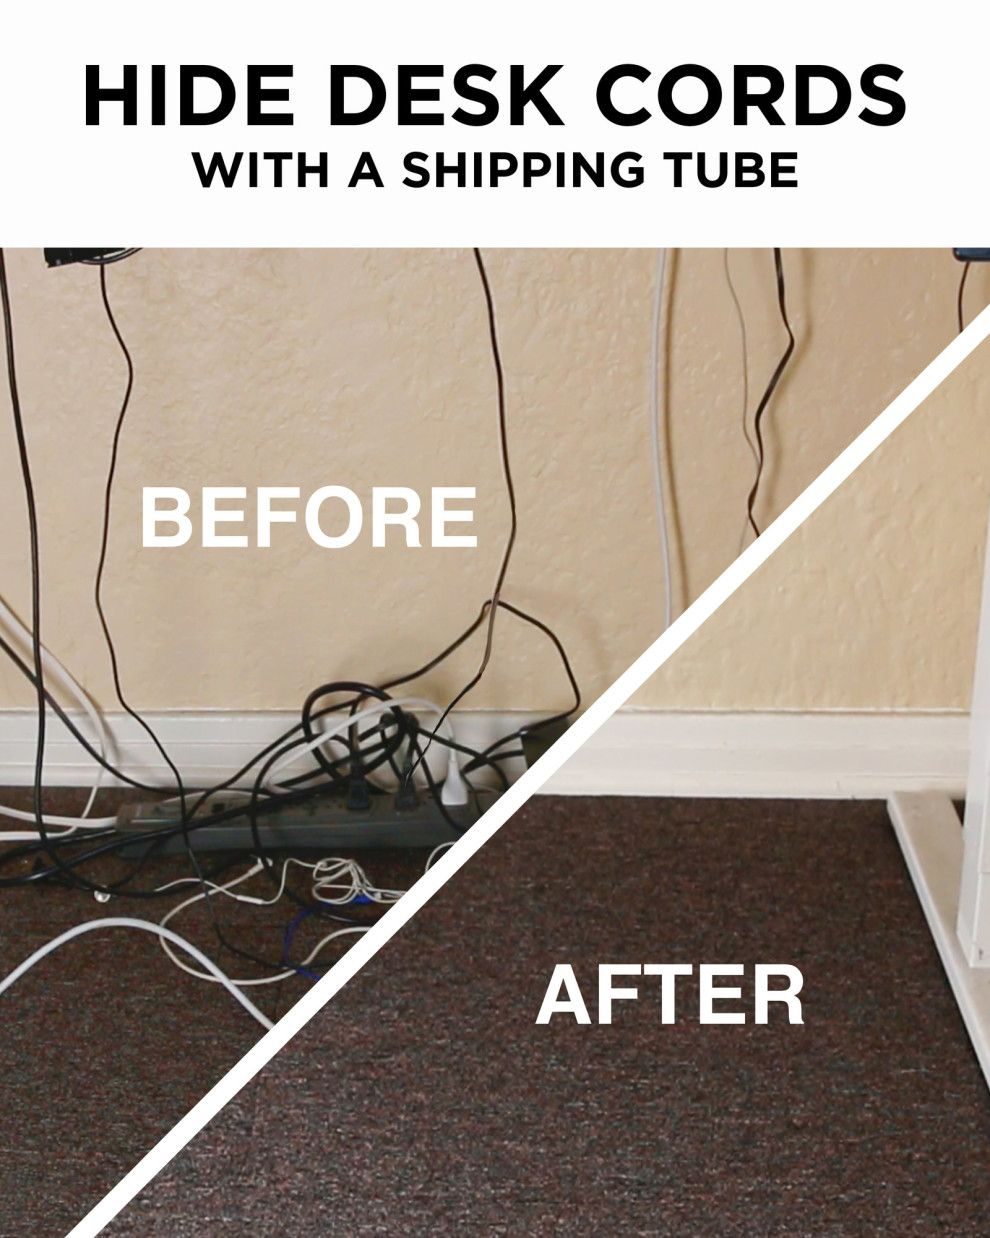 Fernsehkabel Verstecken Fix Tangled Cord Messes With This Clever Desk Hack Ideen